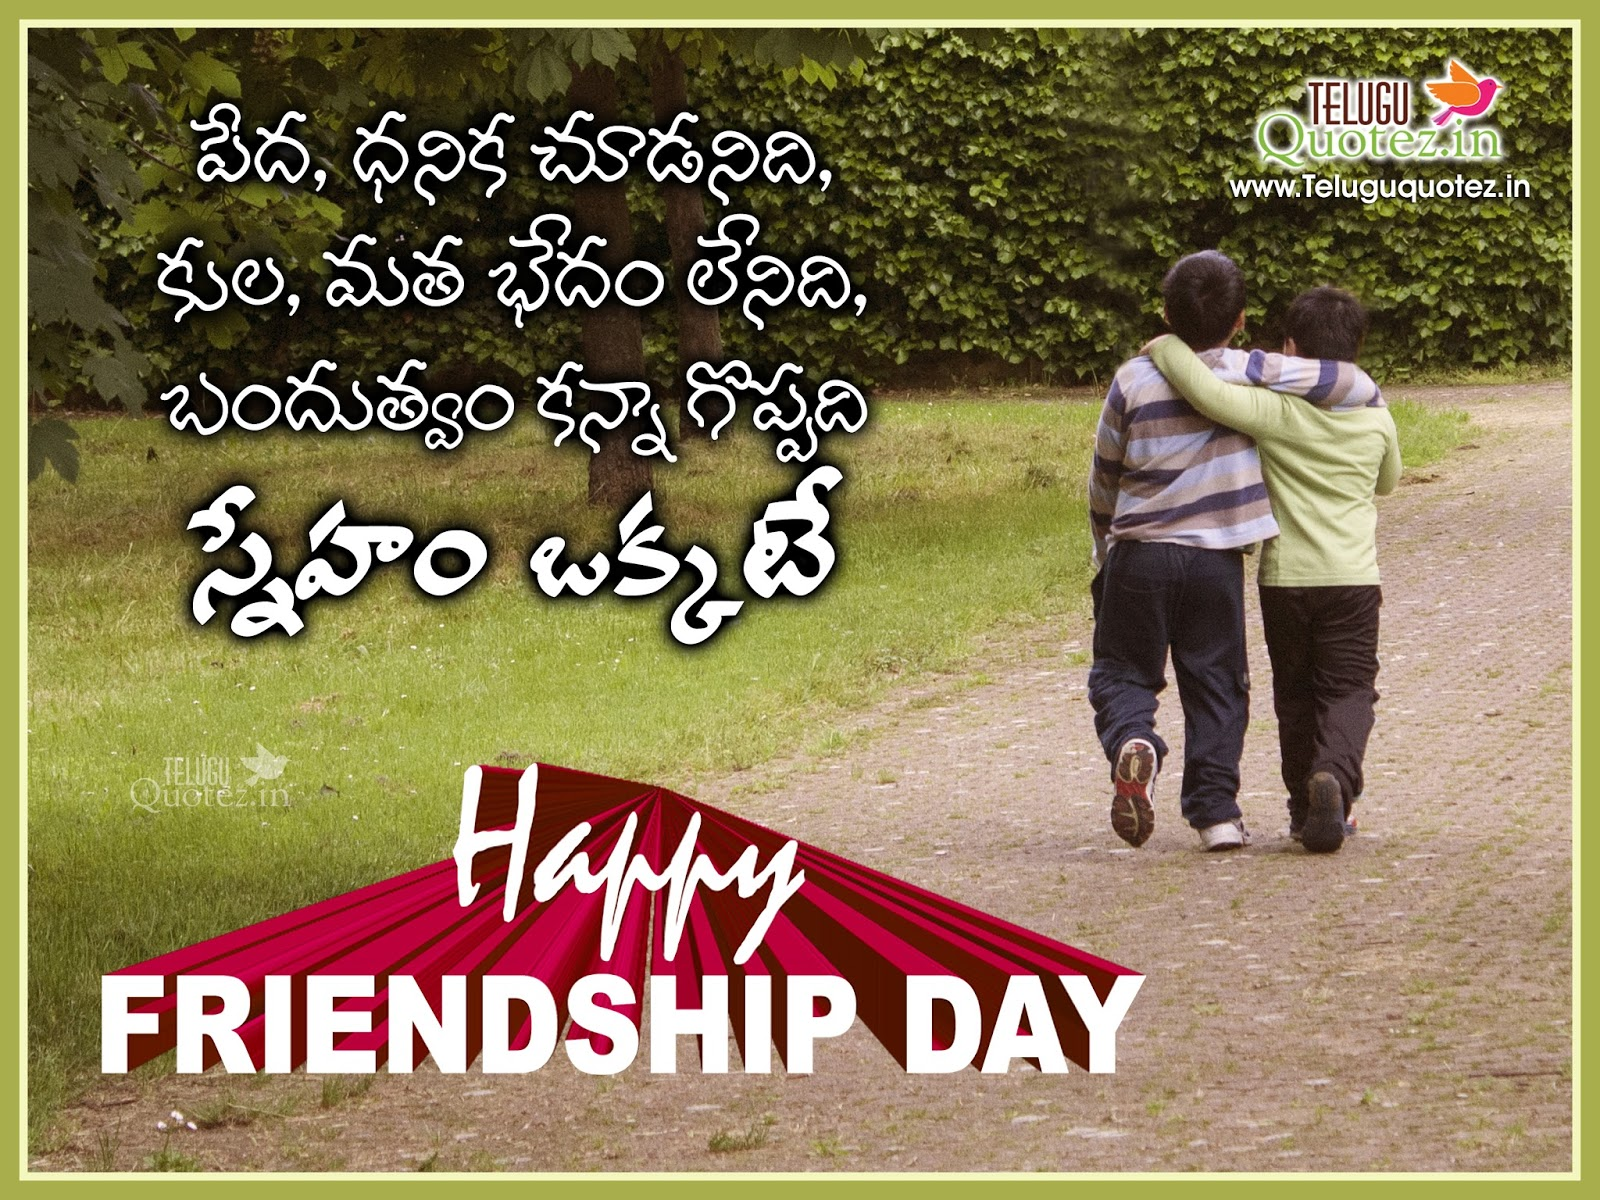 Latest friendship day quotes and picture images teluguquotez